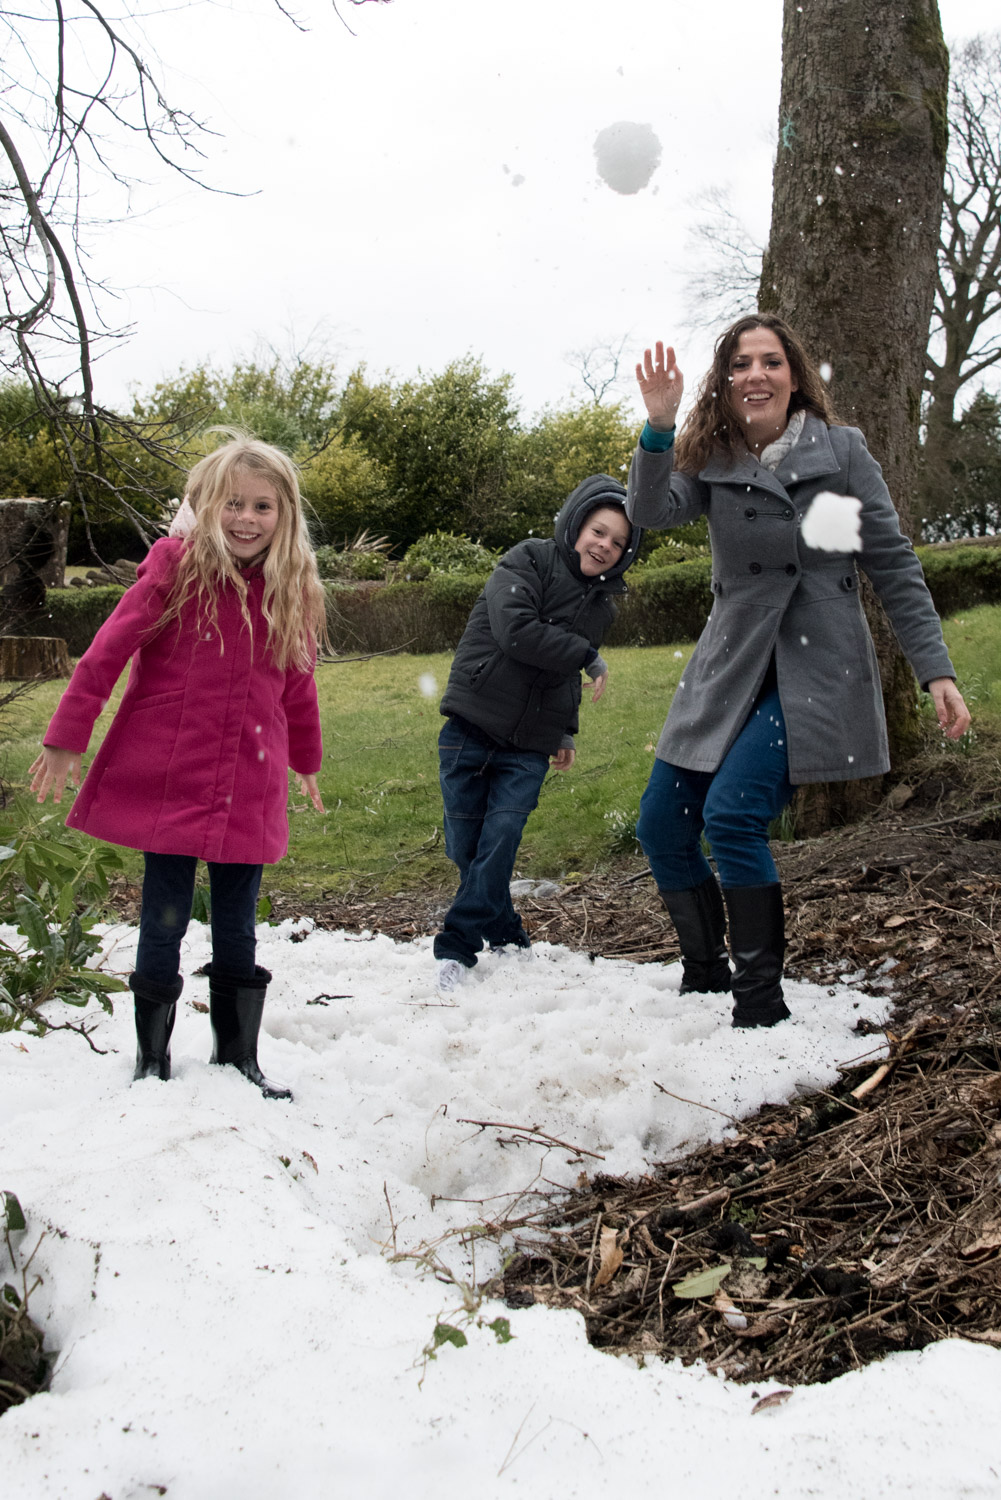 Family Photo Shoot In Dunfermline - snowball fight